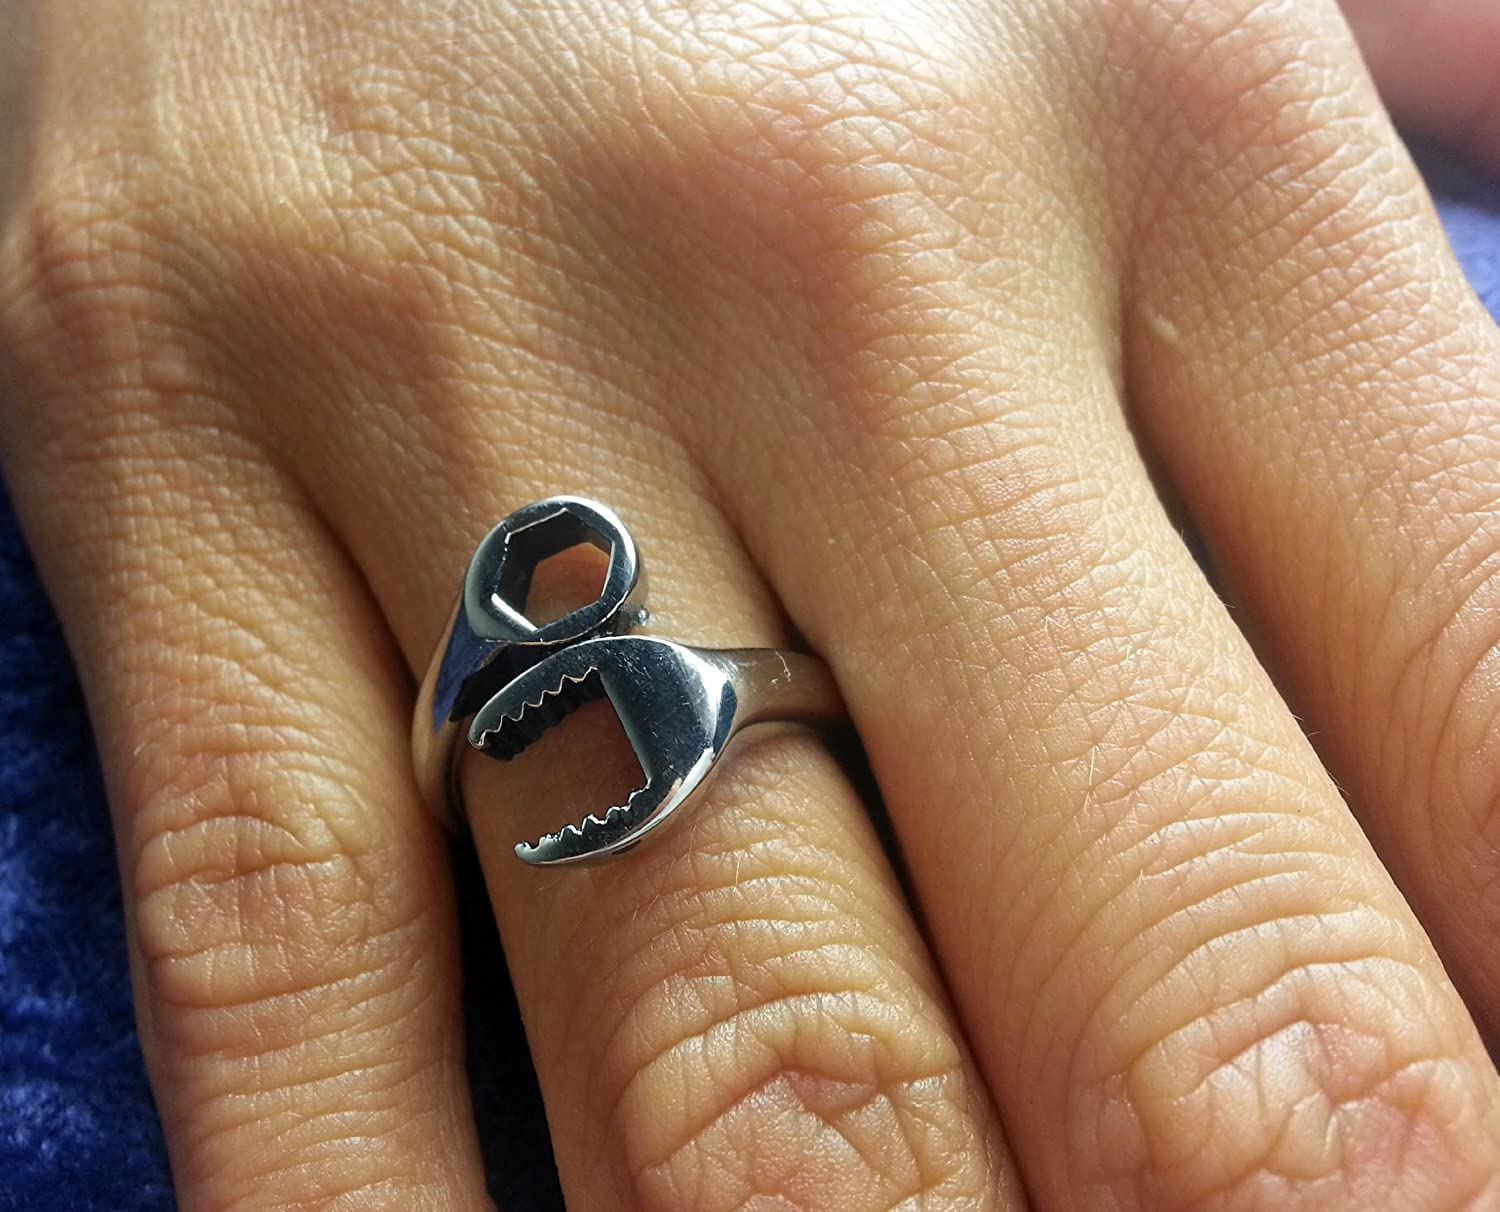 Amazon.com: Stainless Steel Biker Ring - Woman / Ladies Wrench ...